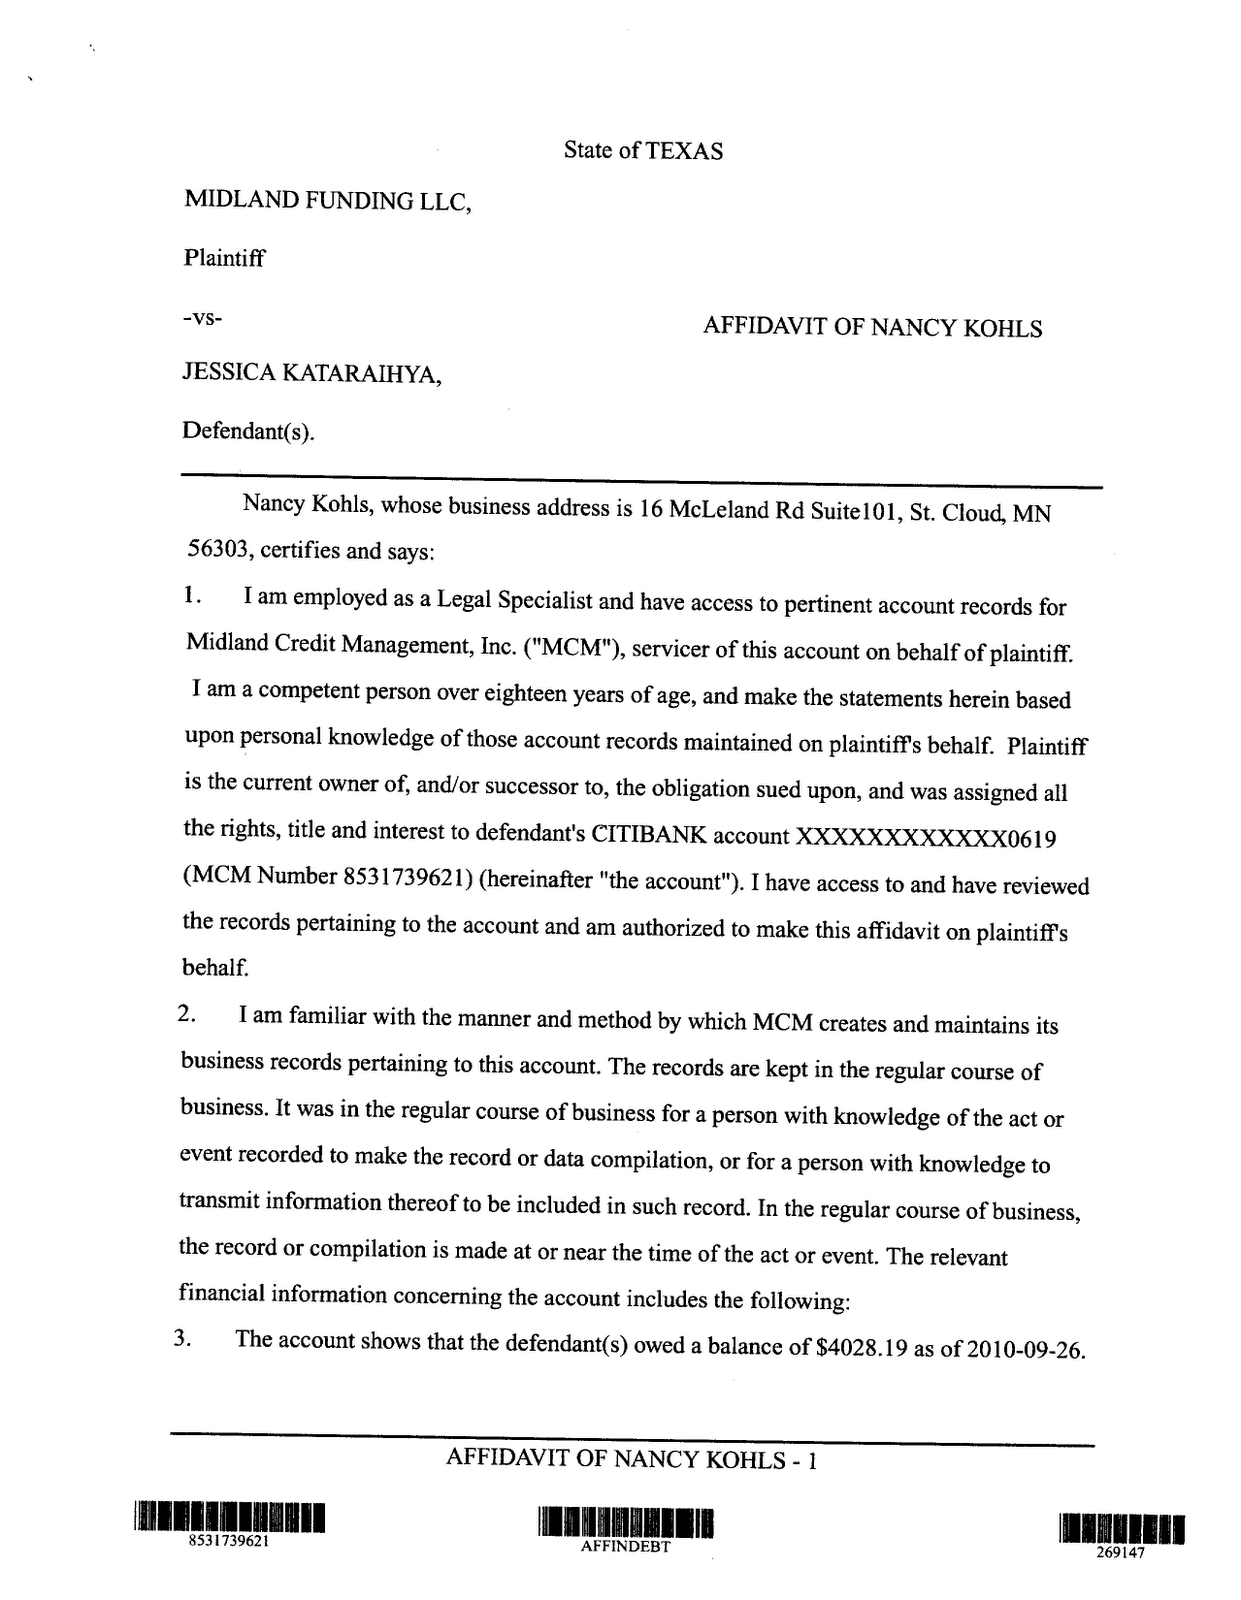 Typical Midland Affidavit from a